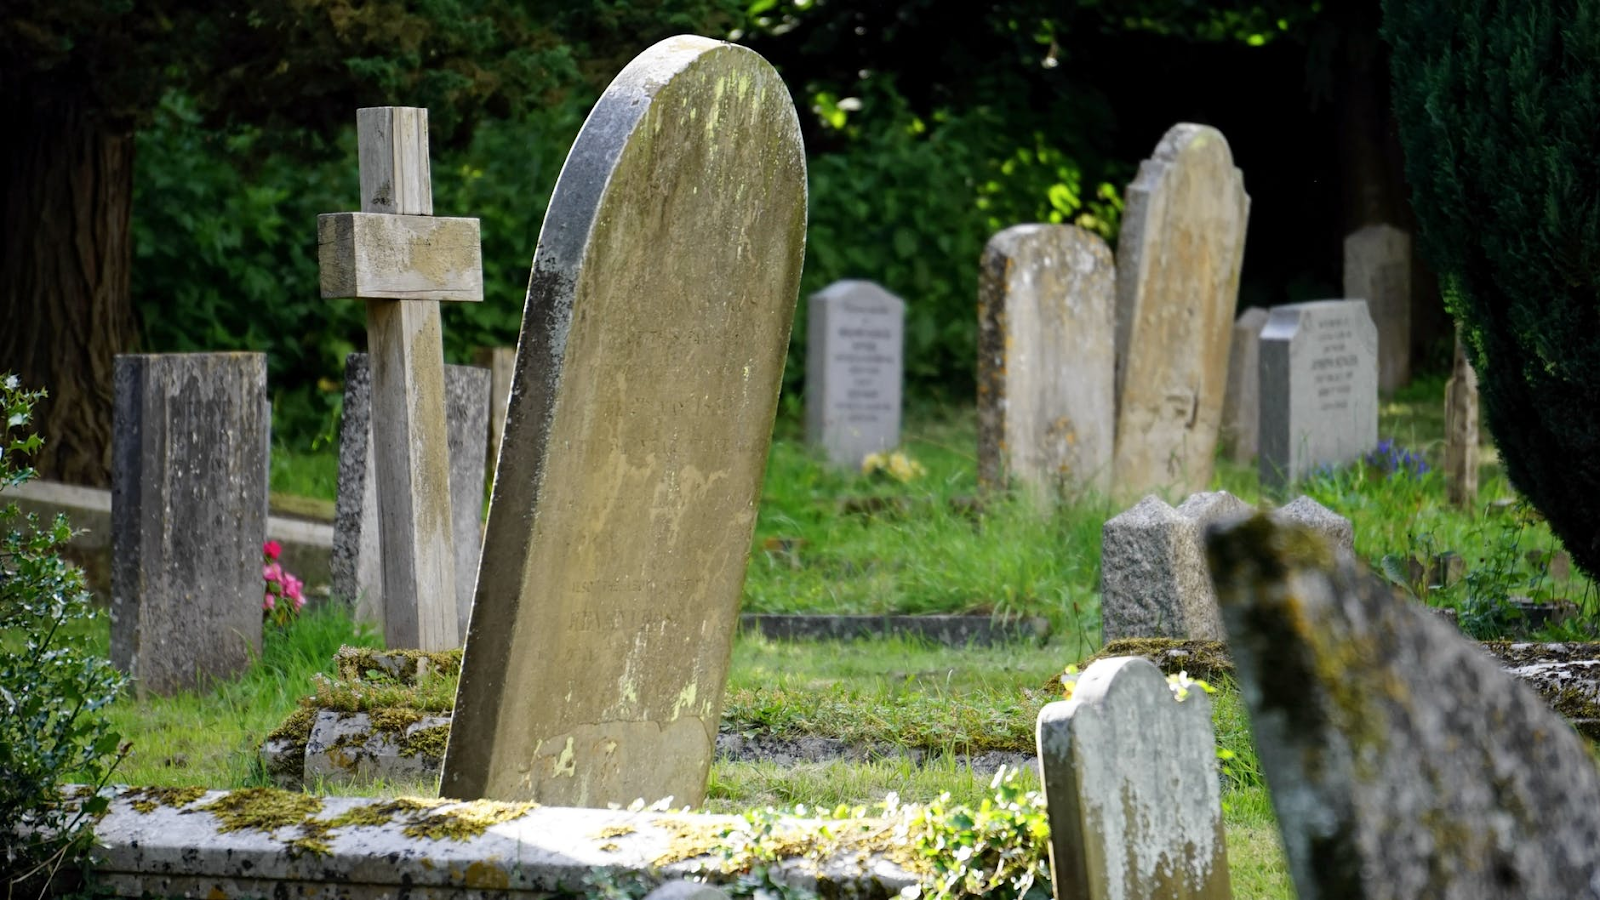 An image of a graveyard with many headstones visible. There is a lot of grass, and some trees and bushes visible in the background.